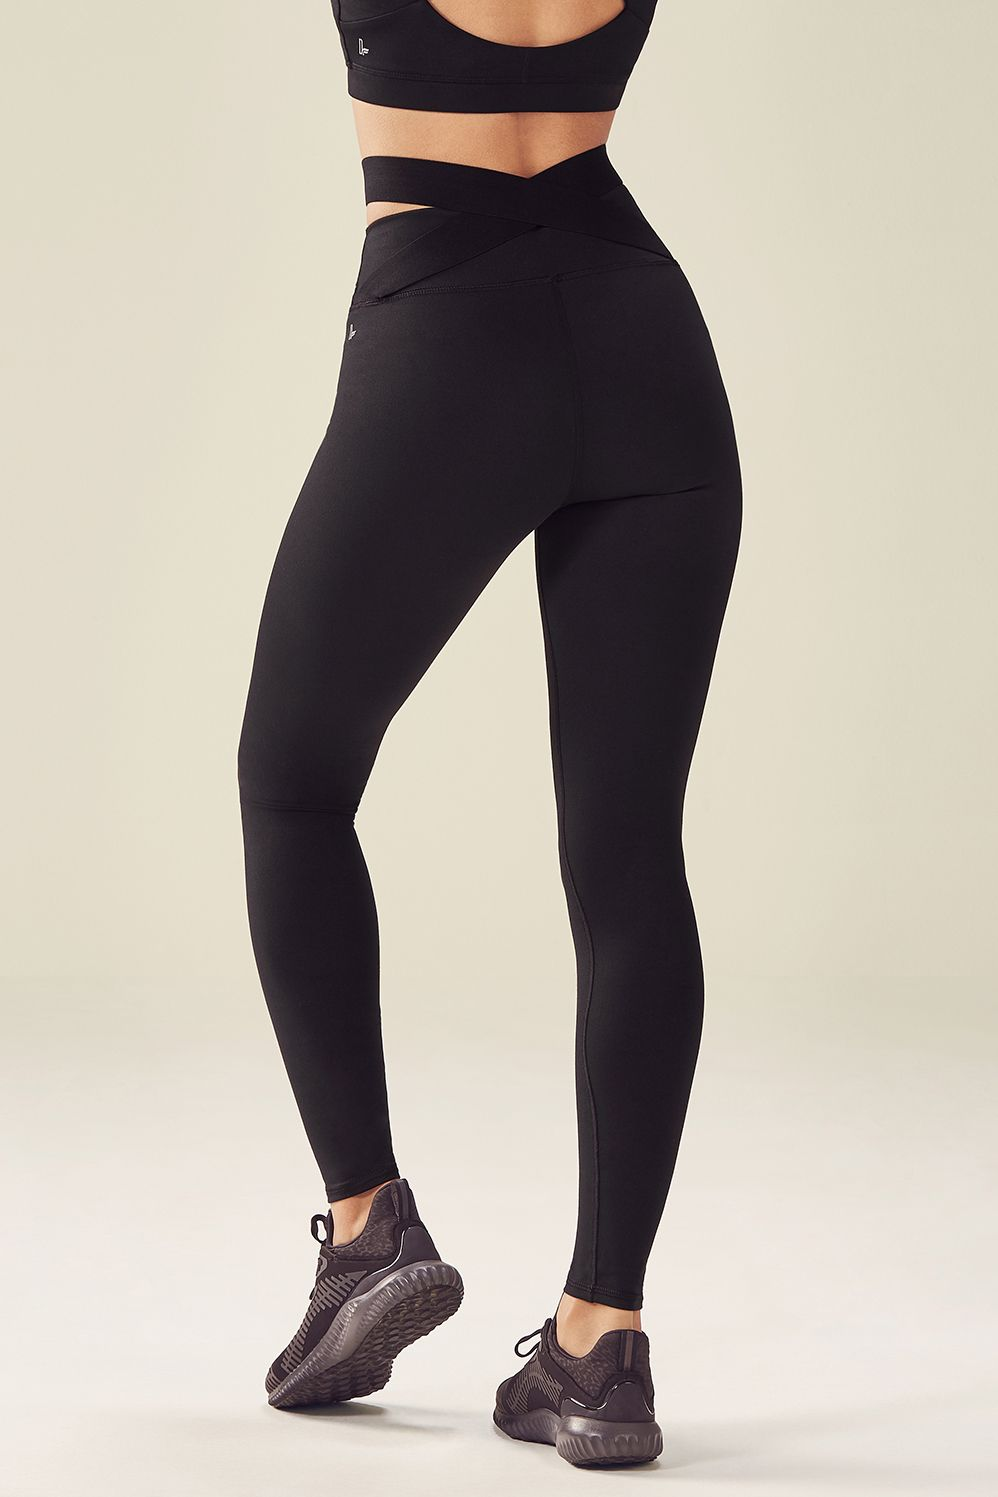 8aac25847d564f High-Waisted Statement PowerHold Legging - Fabletics | style in 2019 ...